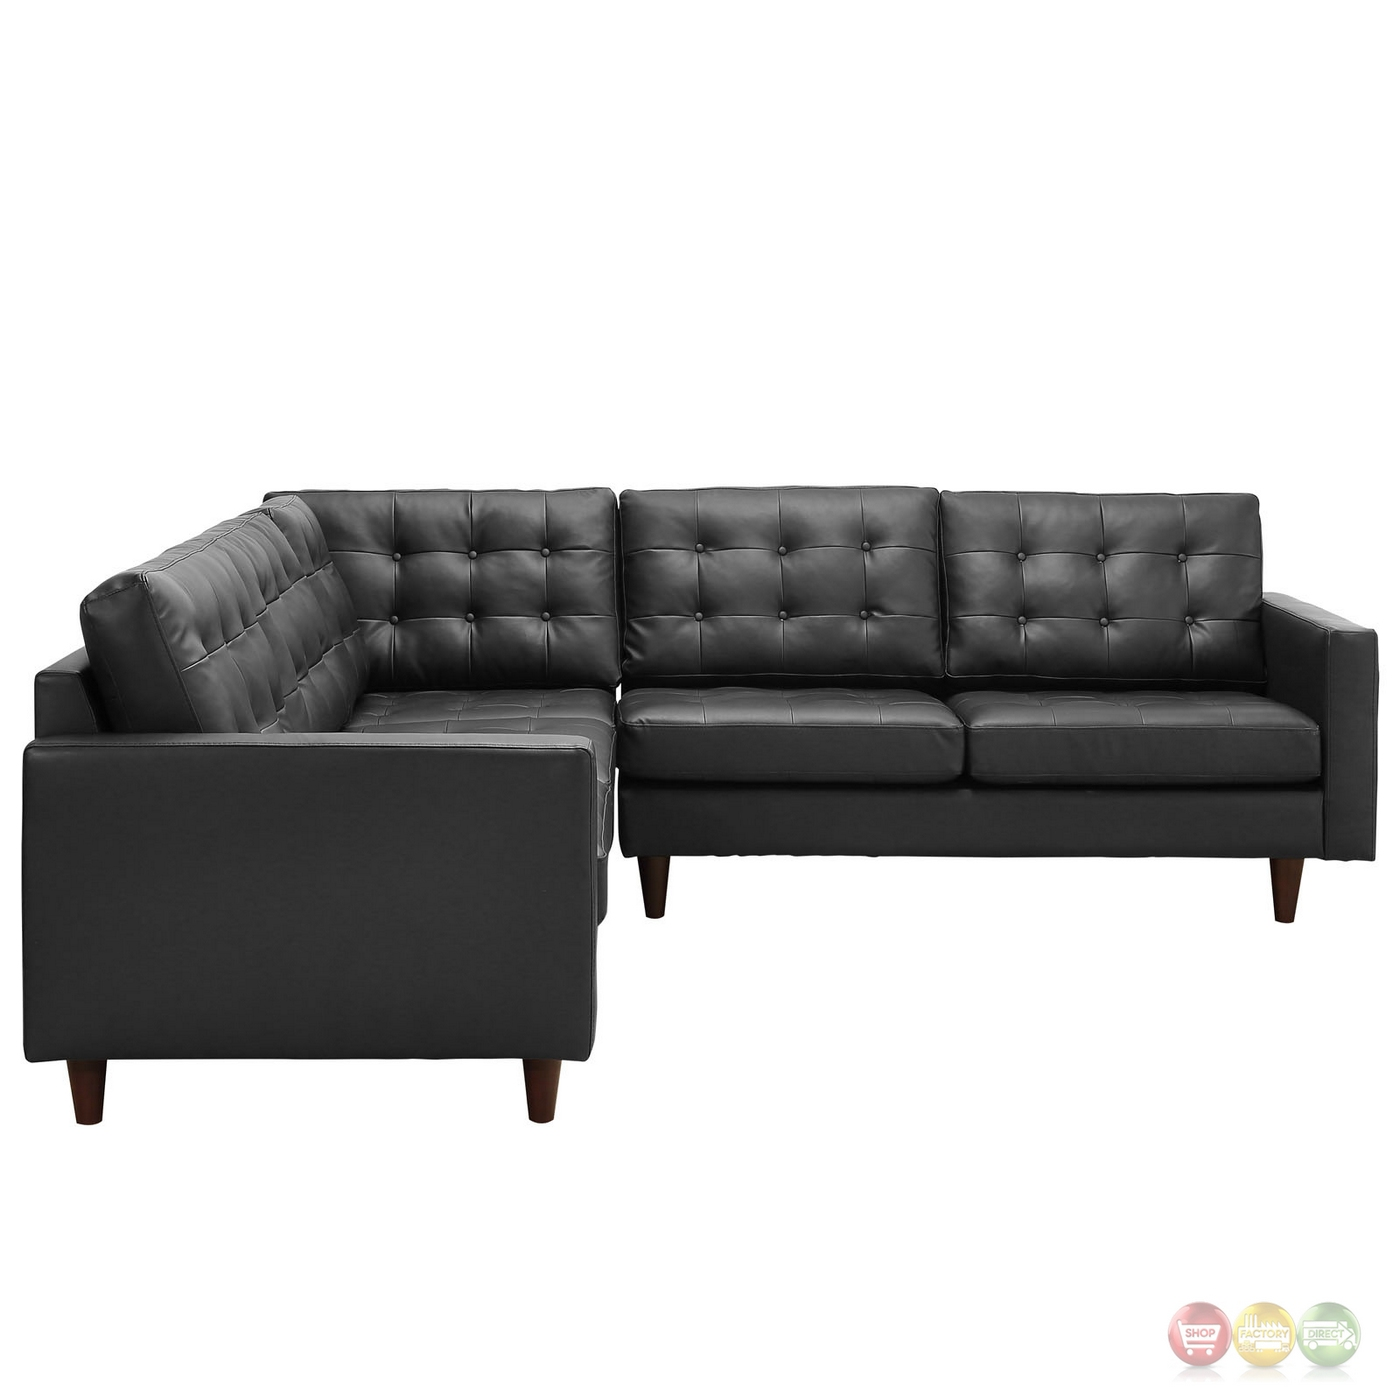 Mid Century Modern Bonded Leather Living Room Sofa Camel: Mid-Century Modern Empress 3pc Bonded Leather Sectional